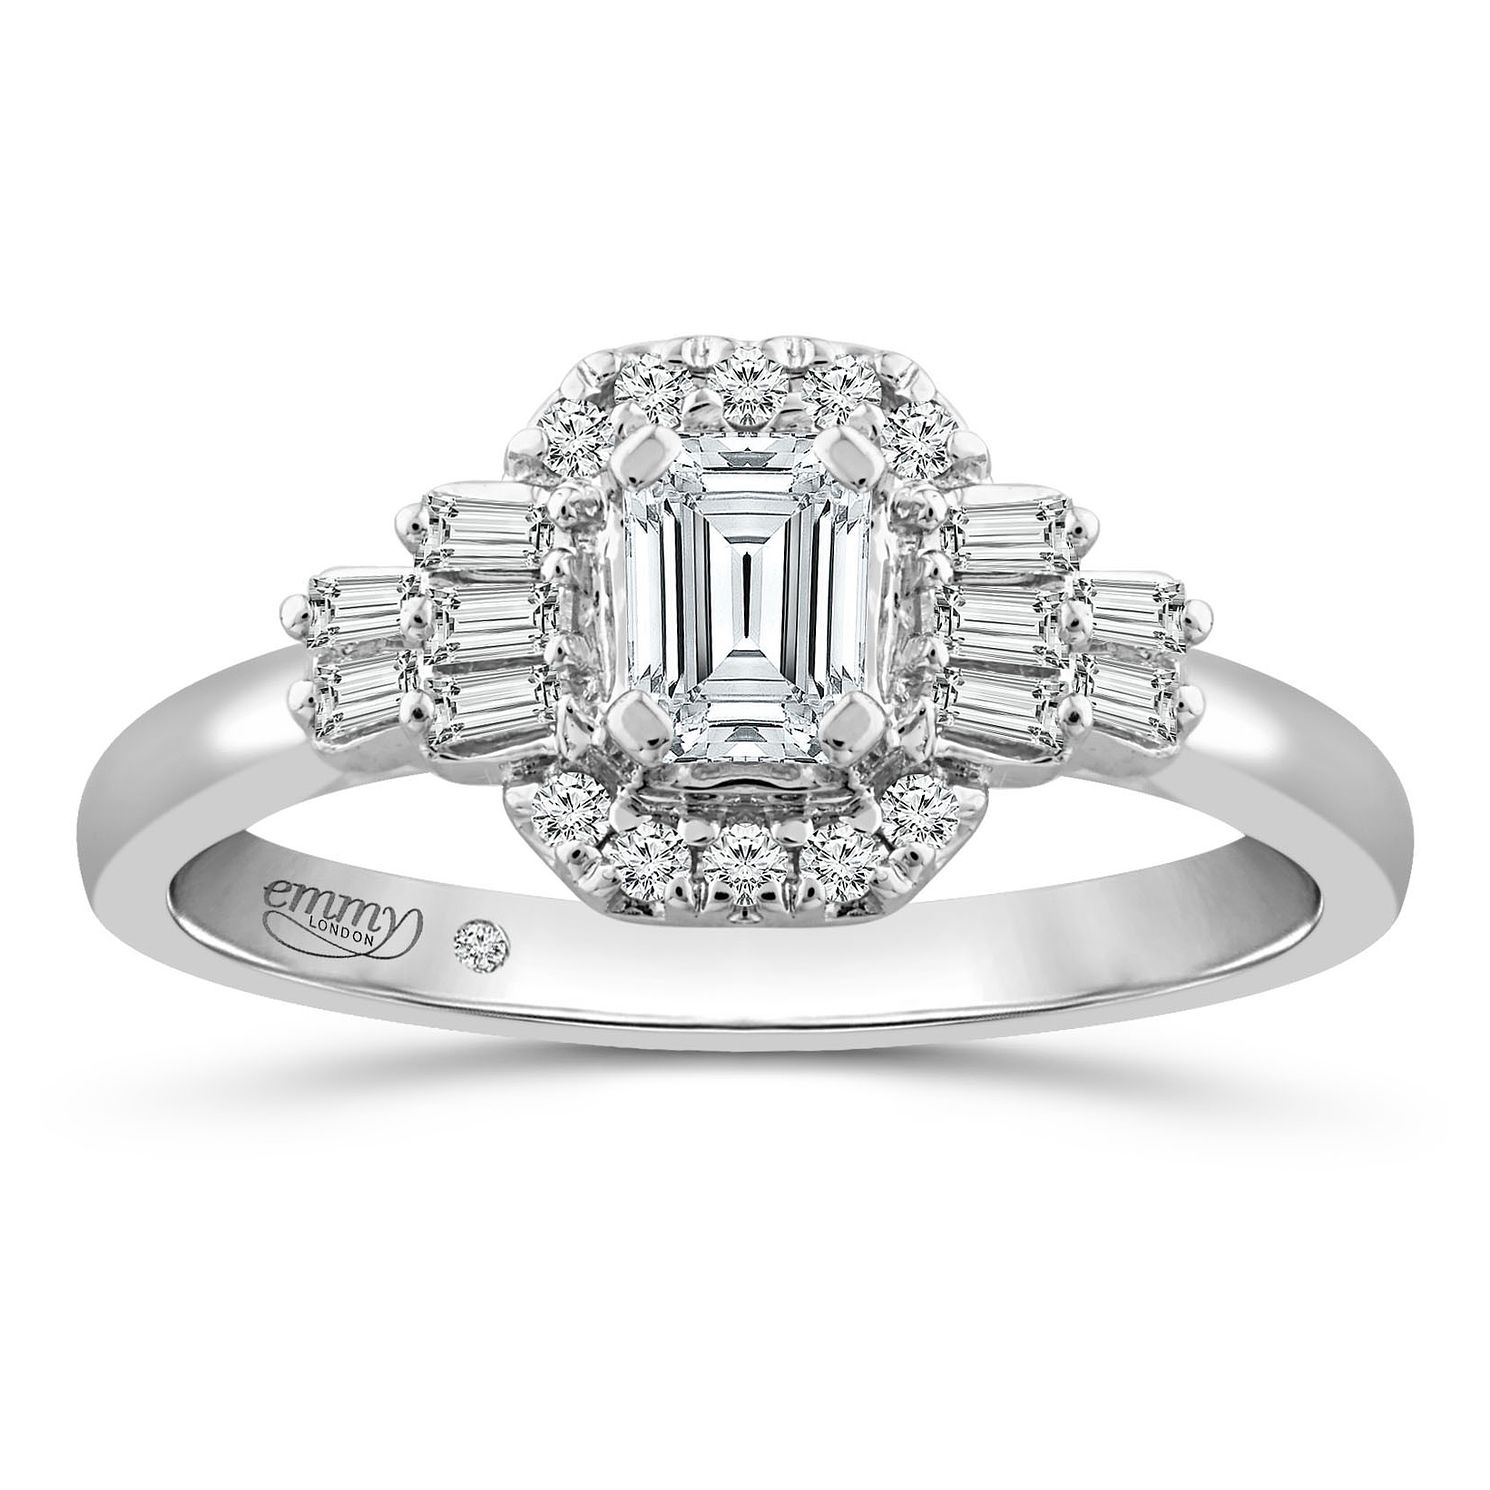 Emmy London Platinum 1/2ct Diamond Fancy Ring - Product number 5169364